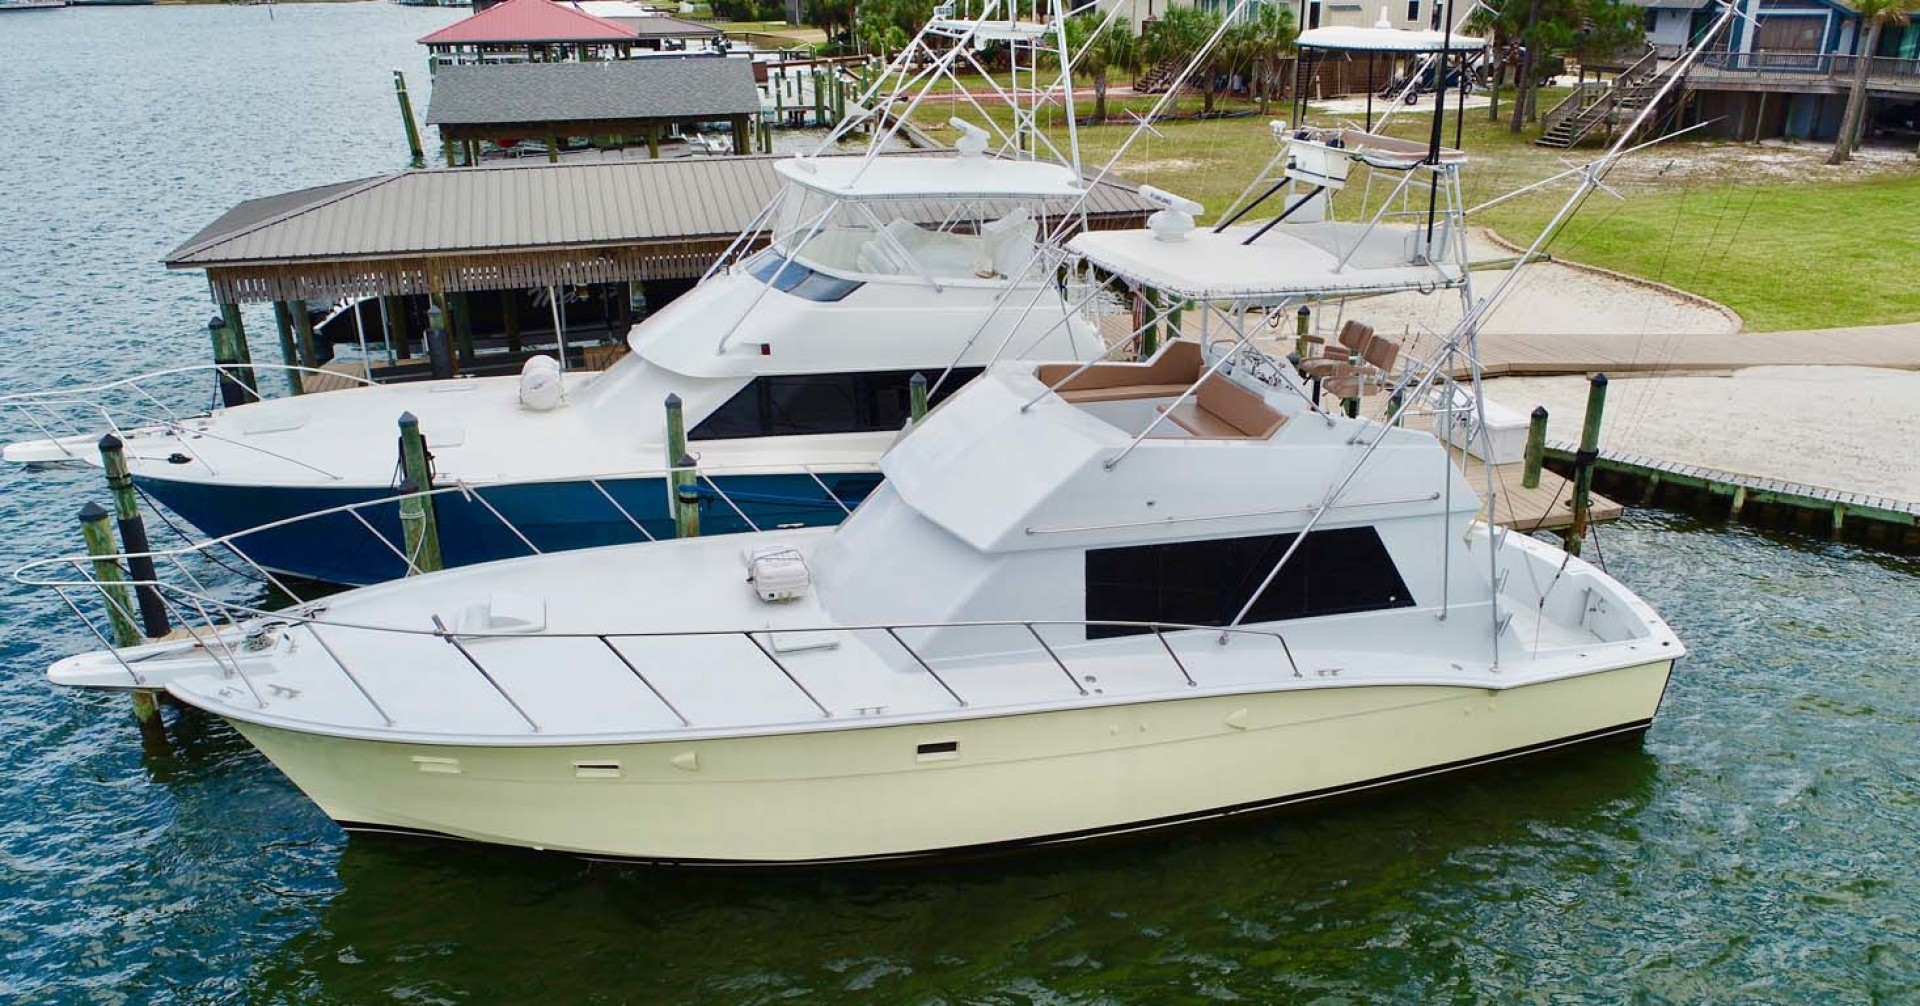 Hatteras-50 Convertible 1982-FATSO Orange Beach-Alabama-United States-31 Port   Dock-1179285 | Thumbnail